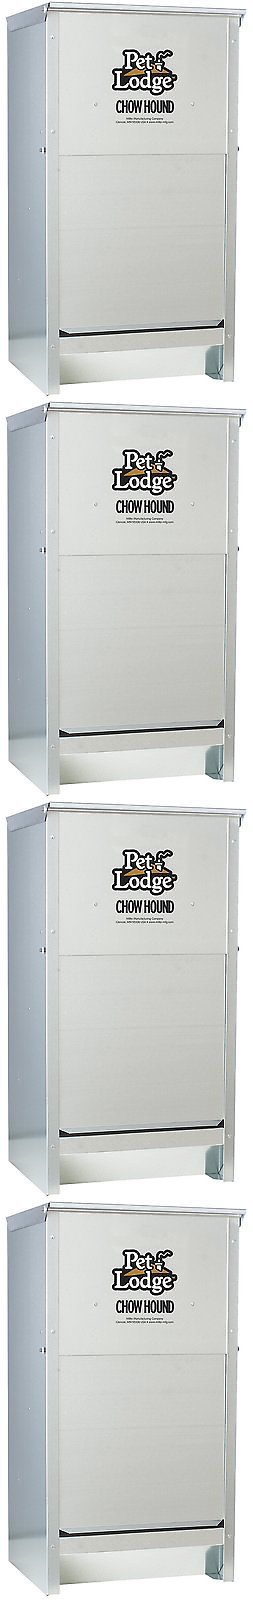 Dishes Feeders and Fountains 177789: Outdoor Automatic Dog Feeder Large Pet Gravity Fed Food Dispenser Holds 50 Lbs! -> BUY IT NOW ONLY: $96.99 on eBay!